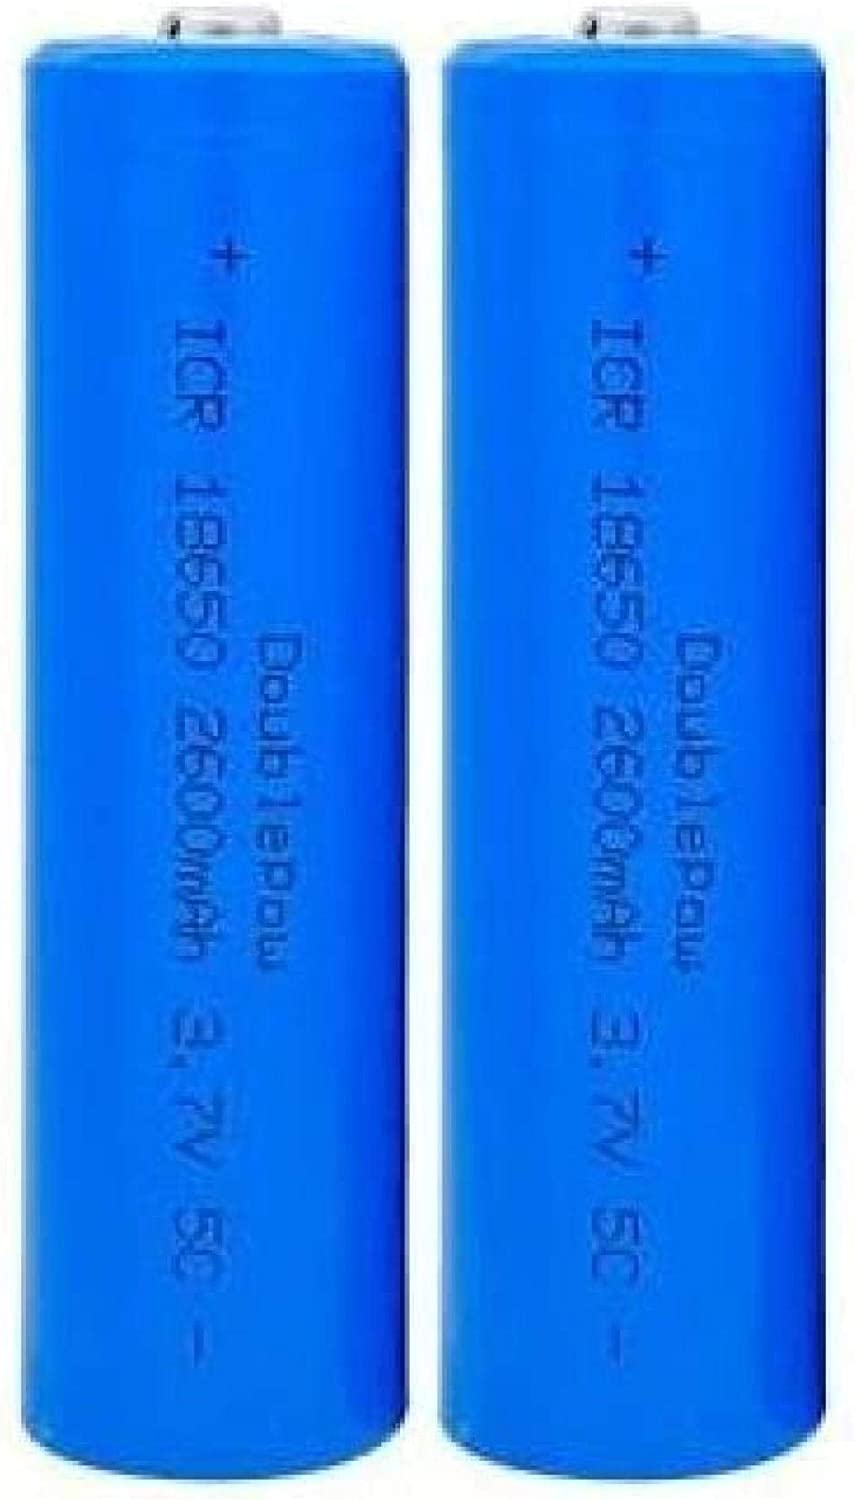 3.7V Ranking TOP2 2600mAh 18650 Rechargeable Battery Batteries- Max 51% OFF Lithium